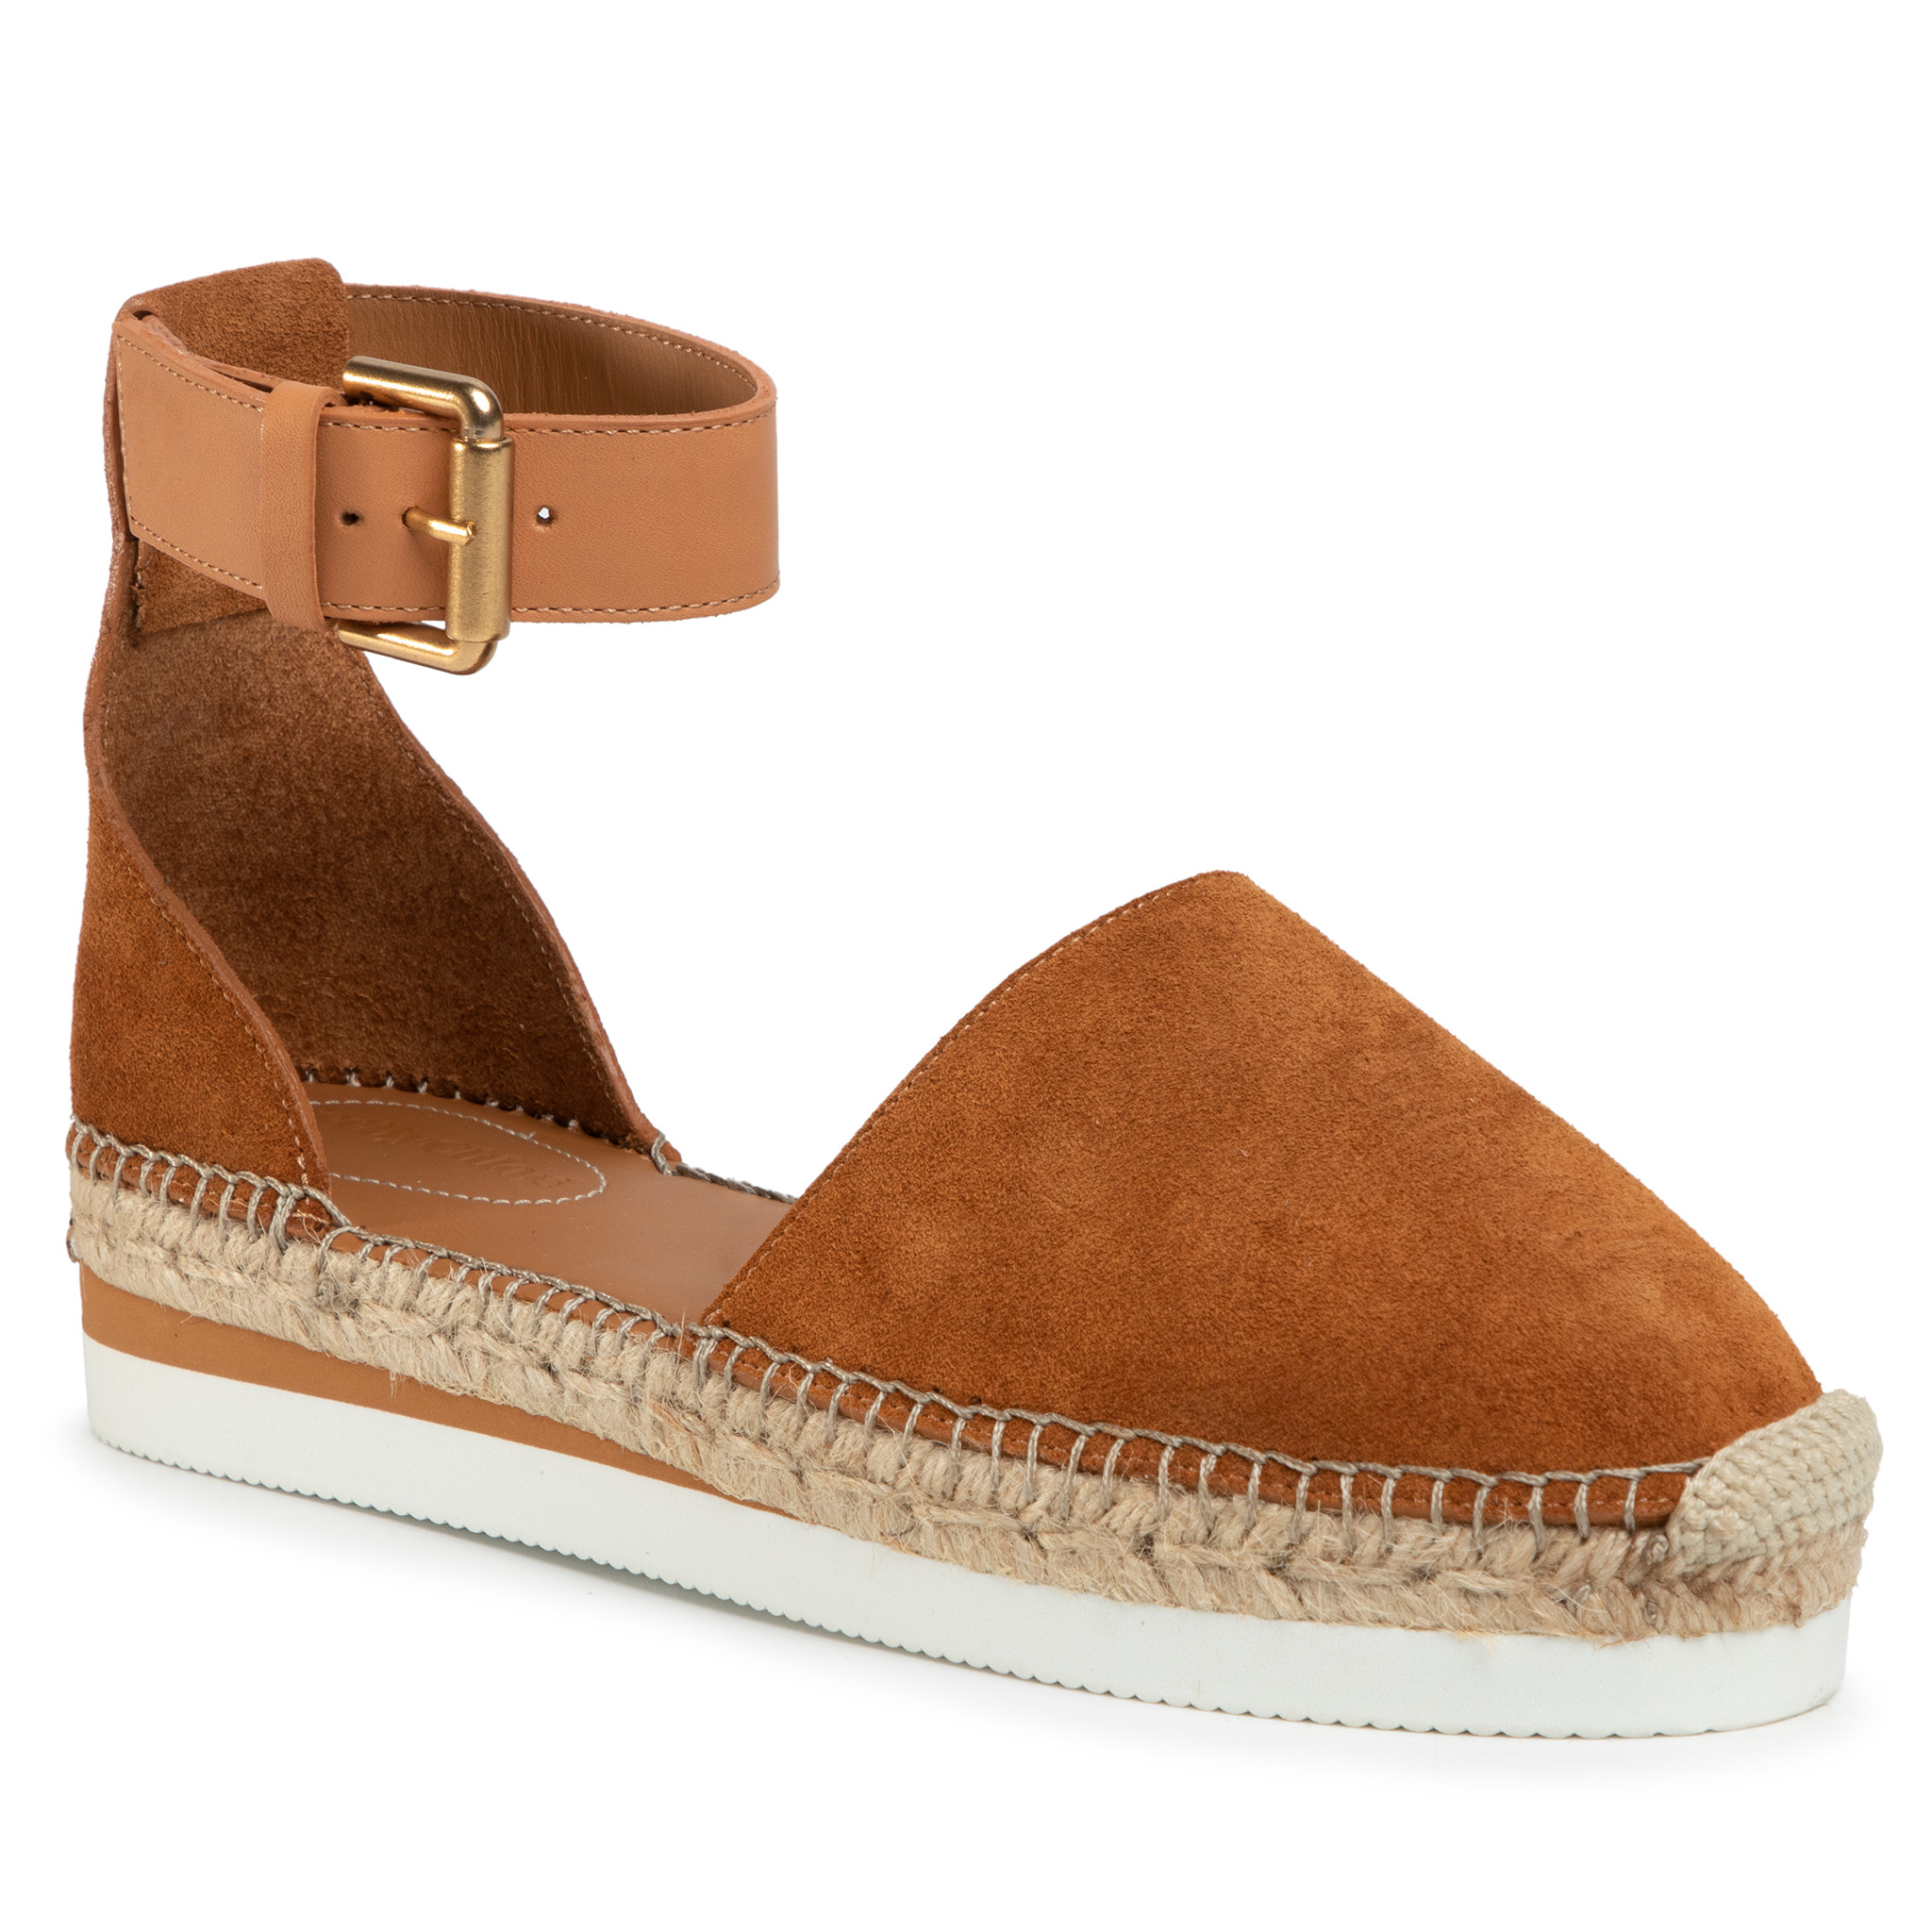 Image of Espadrillas SEE BY CHLOÉ - SB26150 Light Brown 533